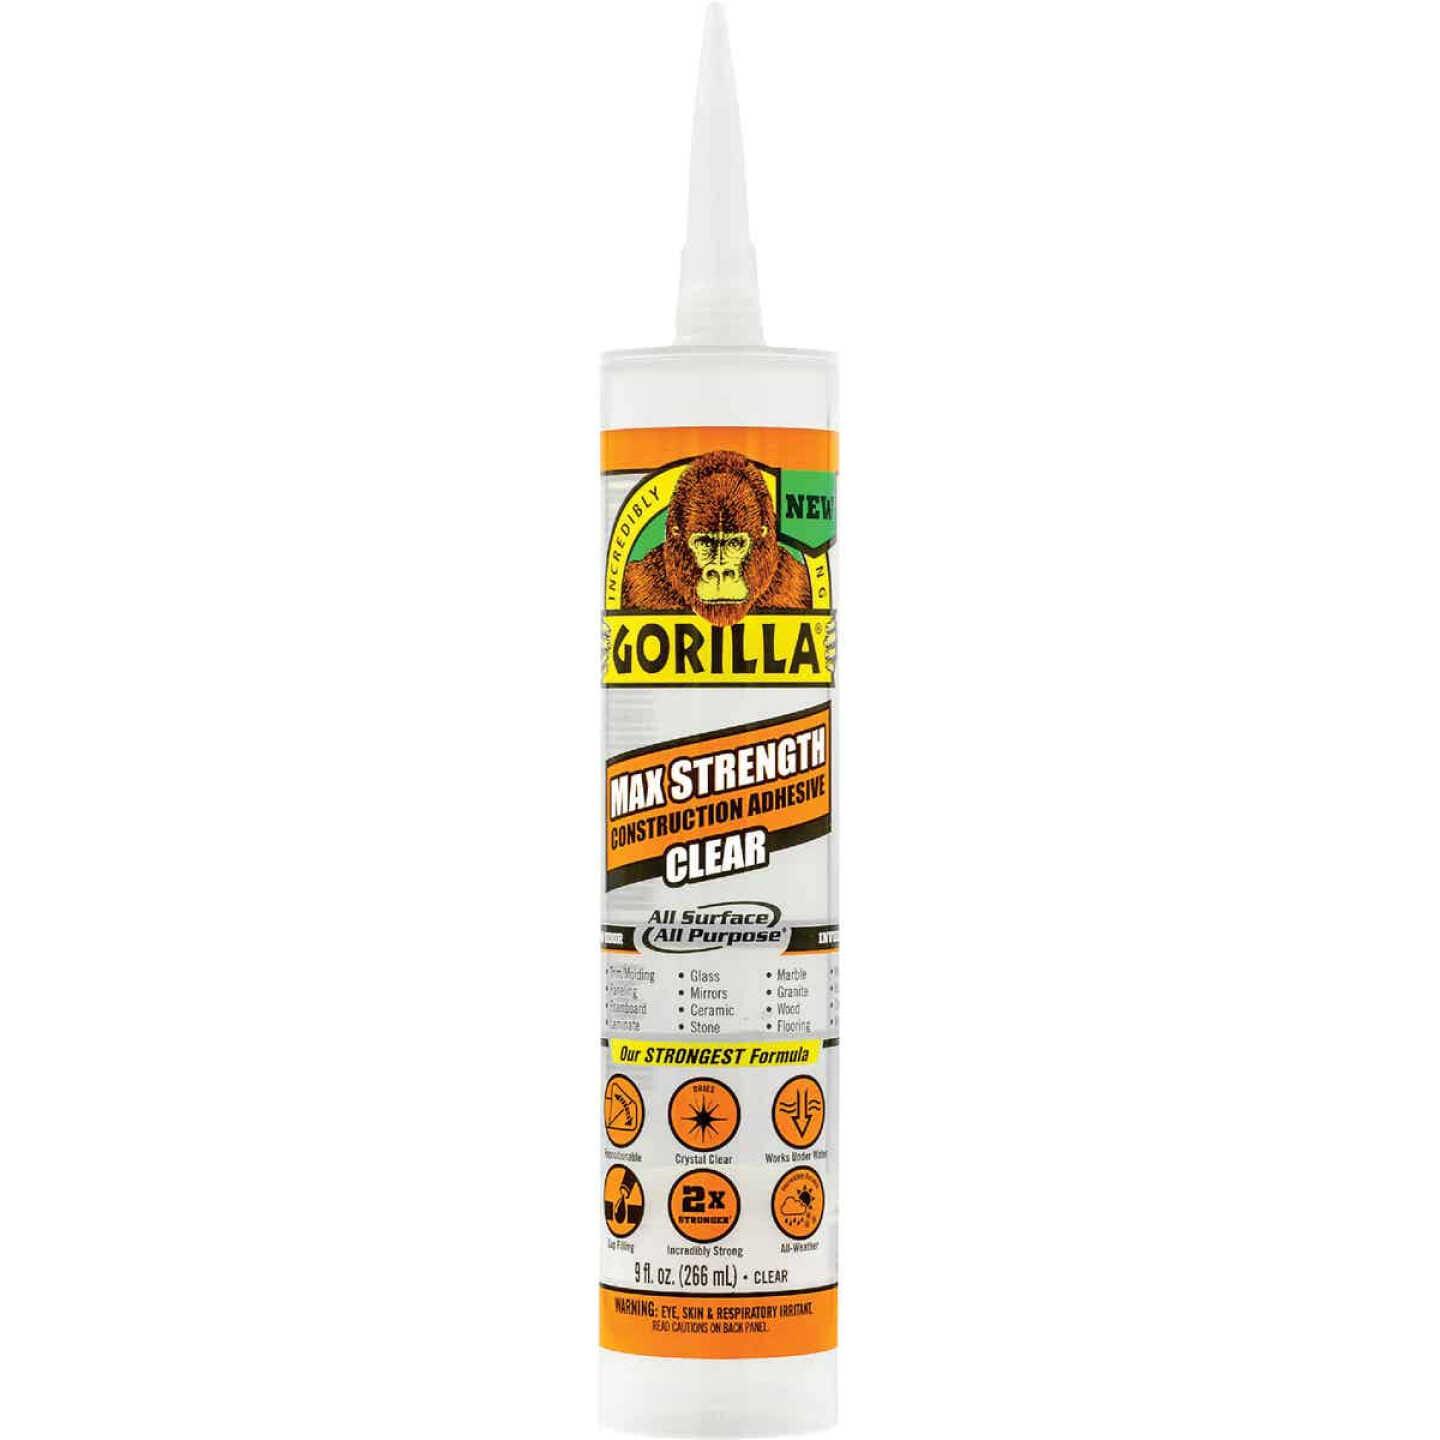 Gorilla 9 Oz. Clear Max Strength Construction Adhesive Image 1